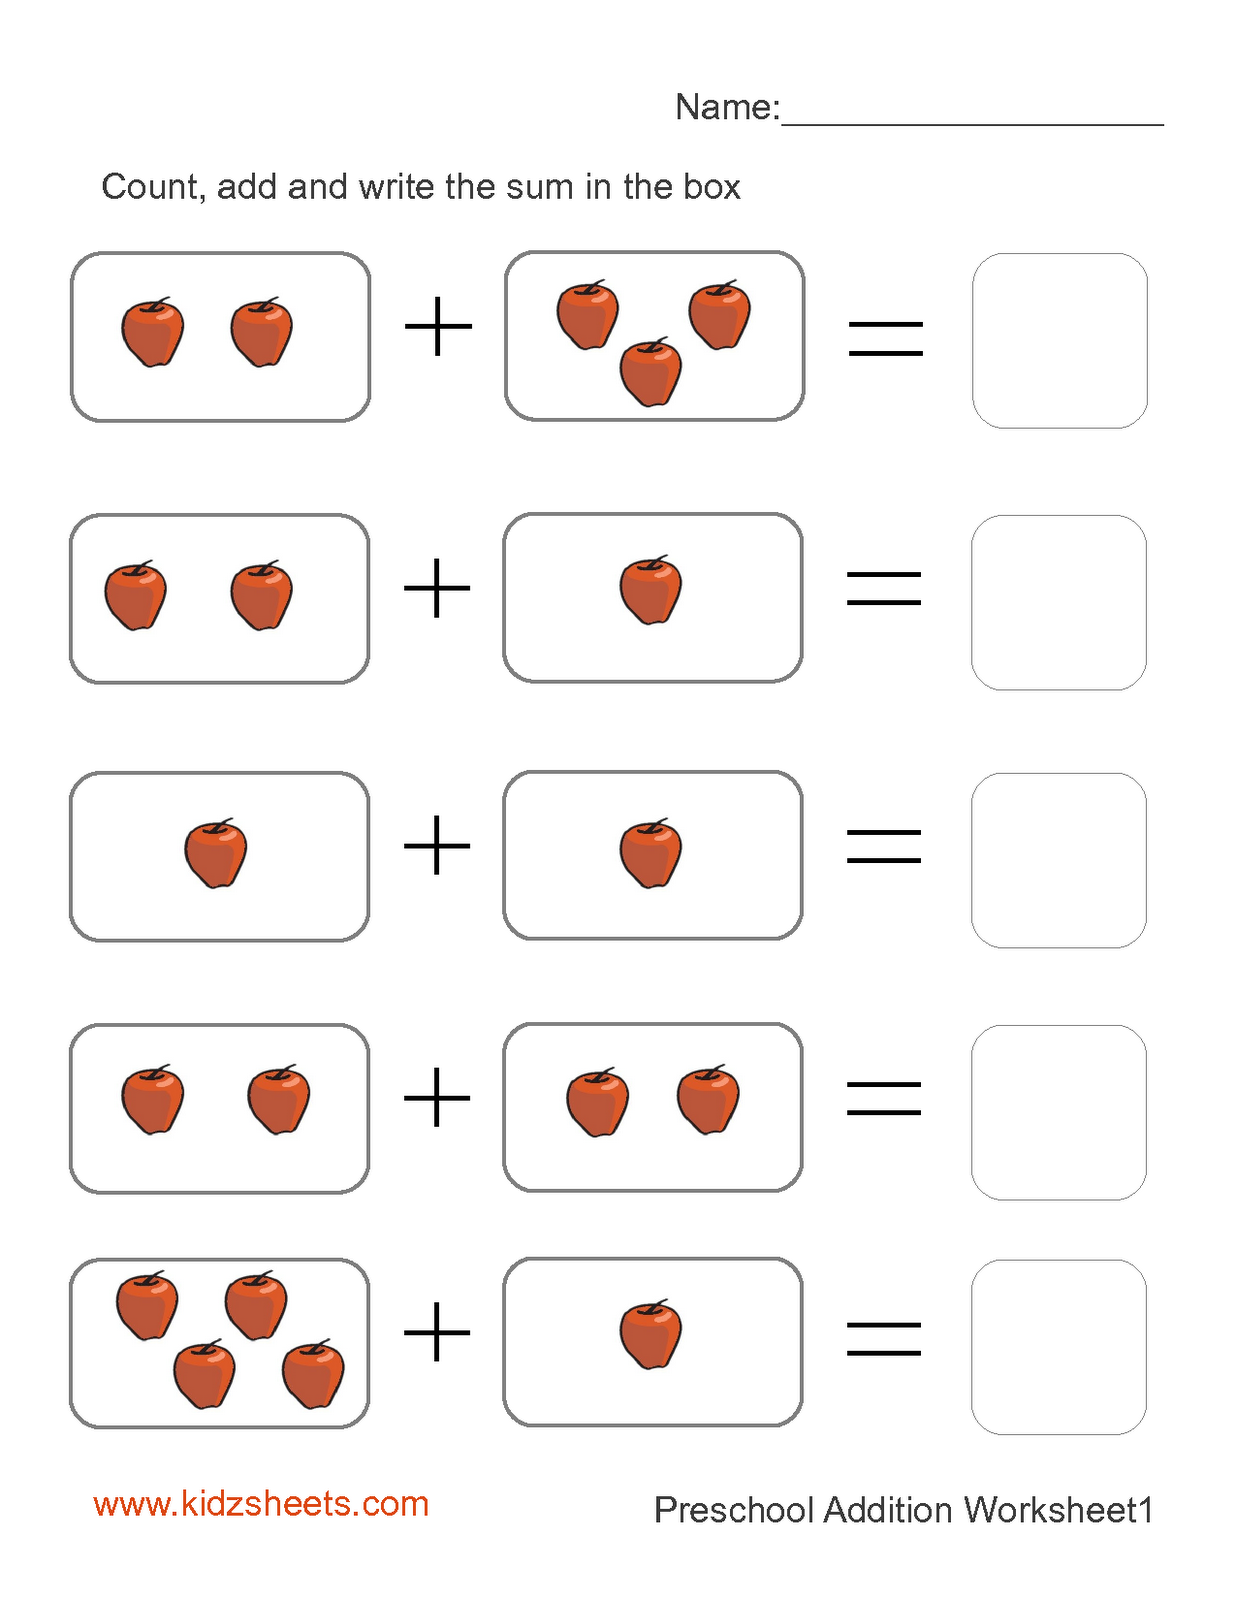 Kindergarten Math Addition Worksheets Free - awareness printable adding worksheets kindergarten ...